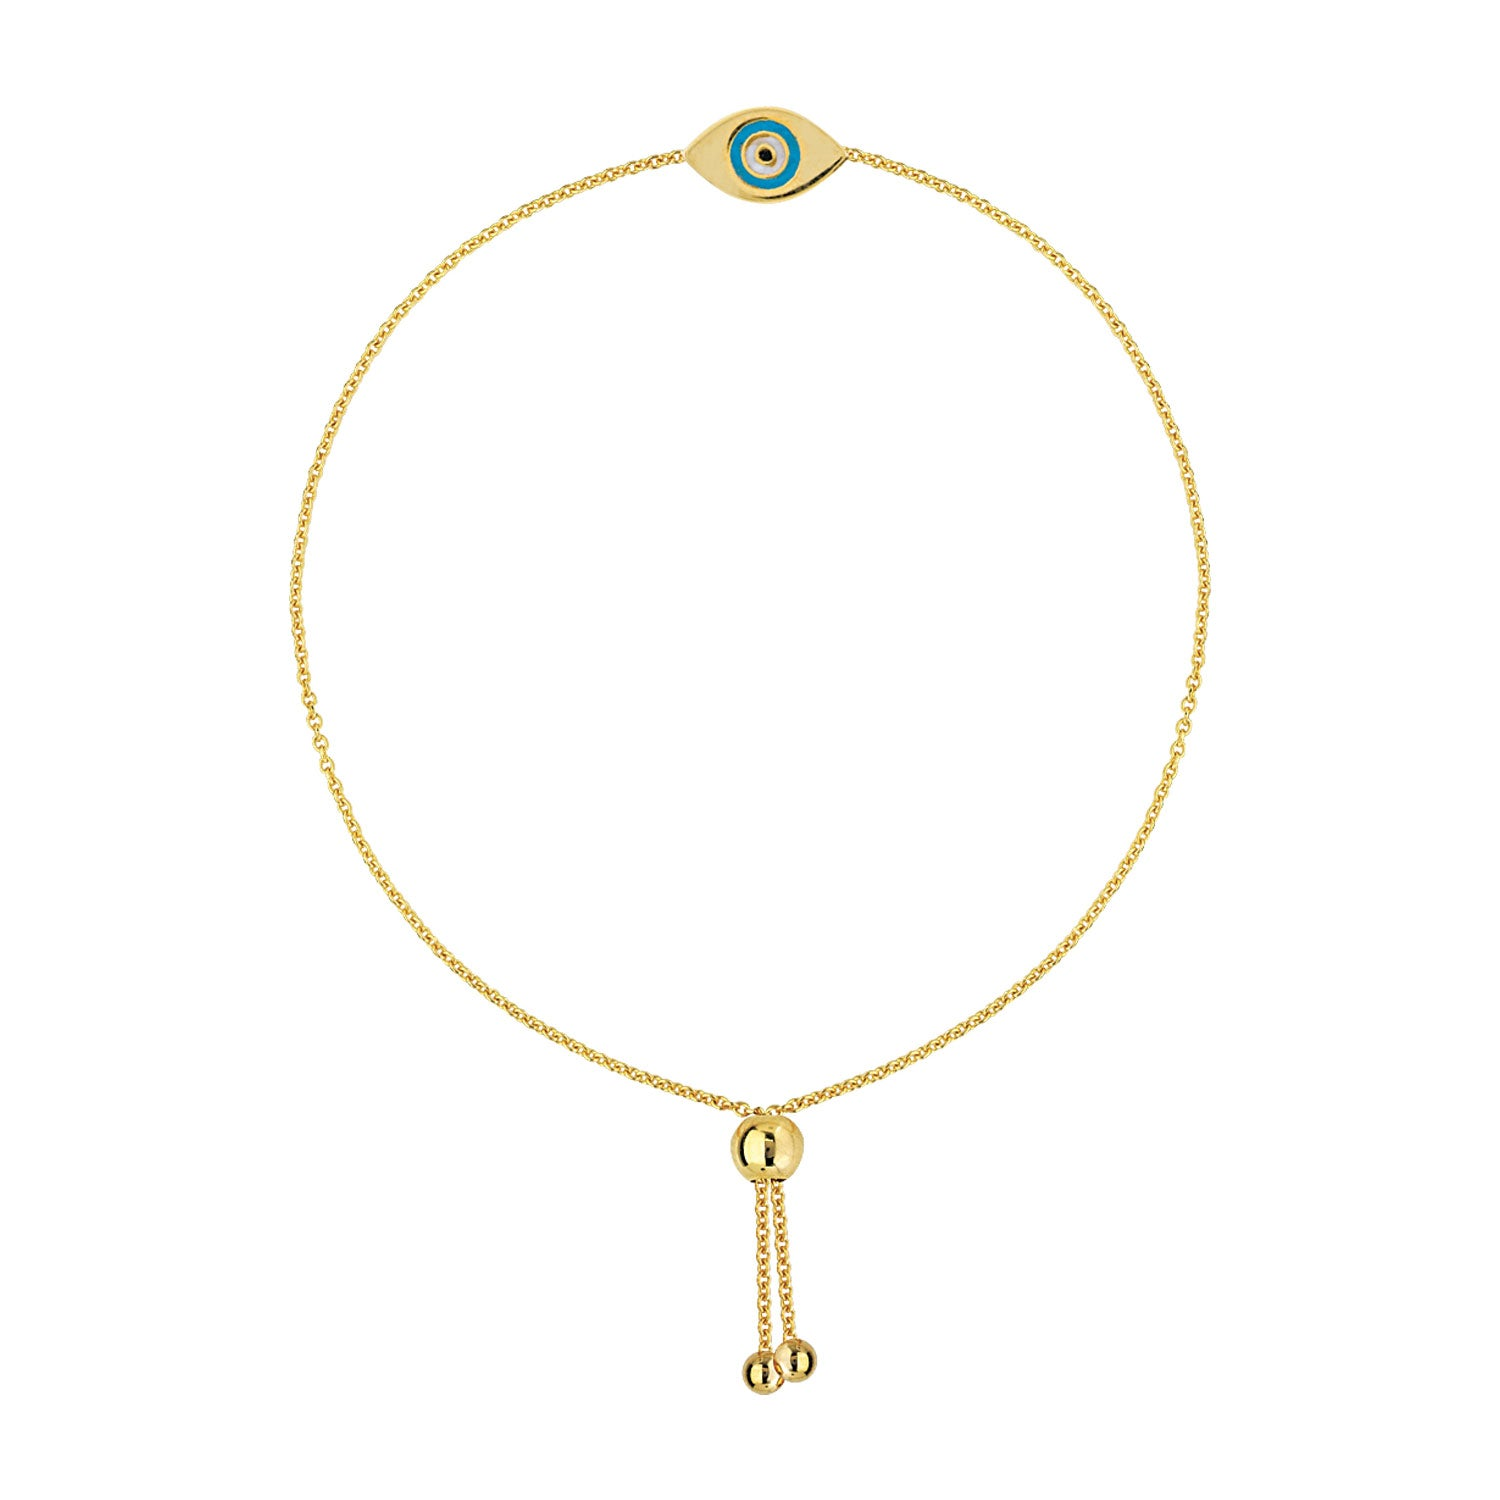 Evil Eye Bolo Bracelet, 14K Yellow Gold